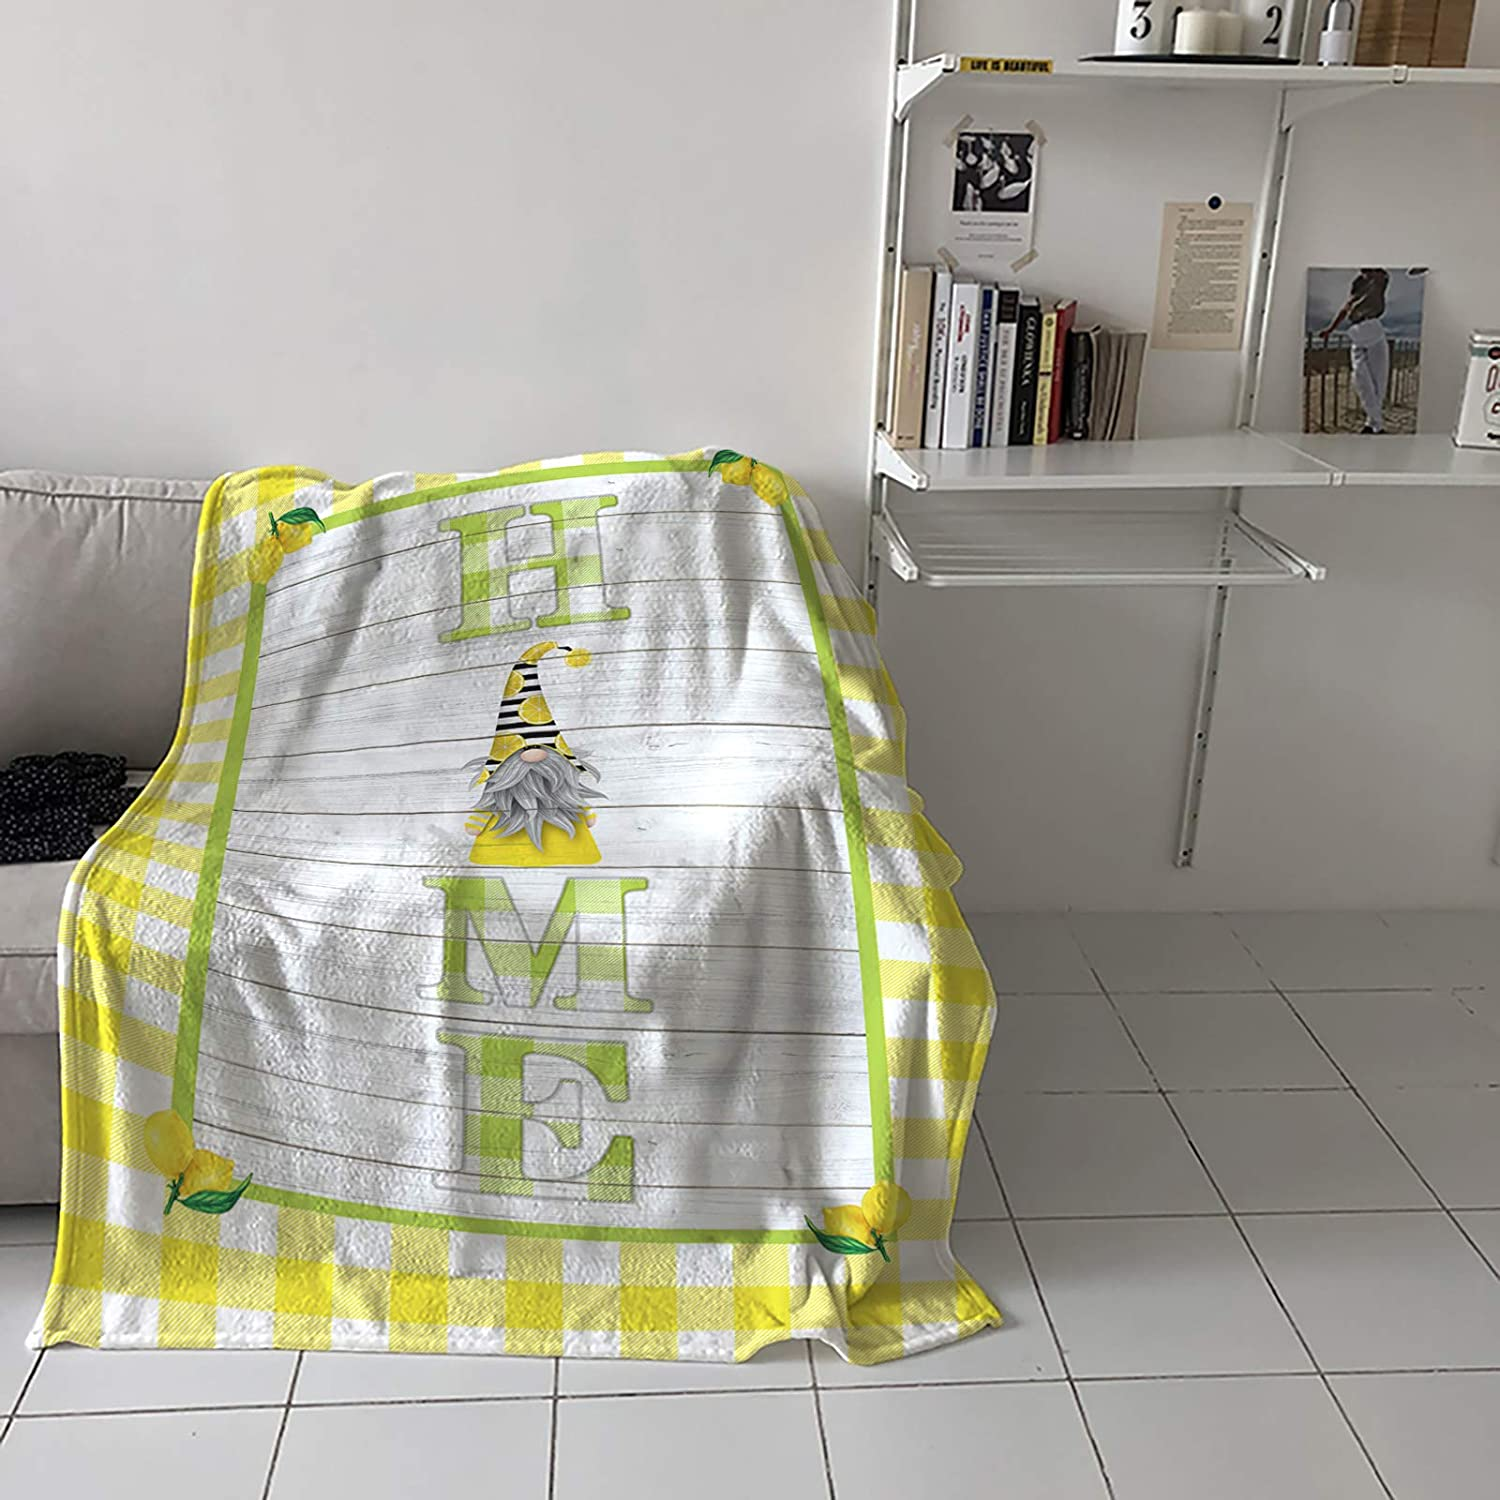 Flannel Fleece Throw Blanket for Sales Couch or Bed price Fresh Sofa Summer